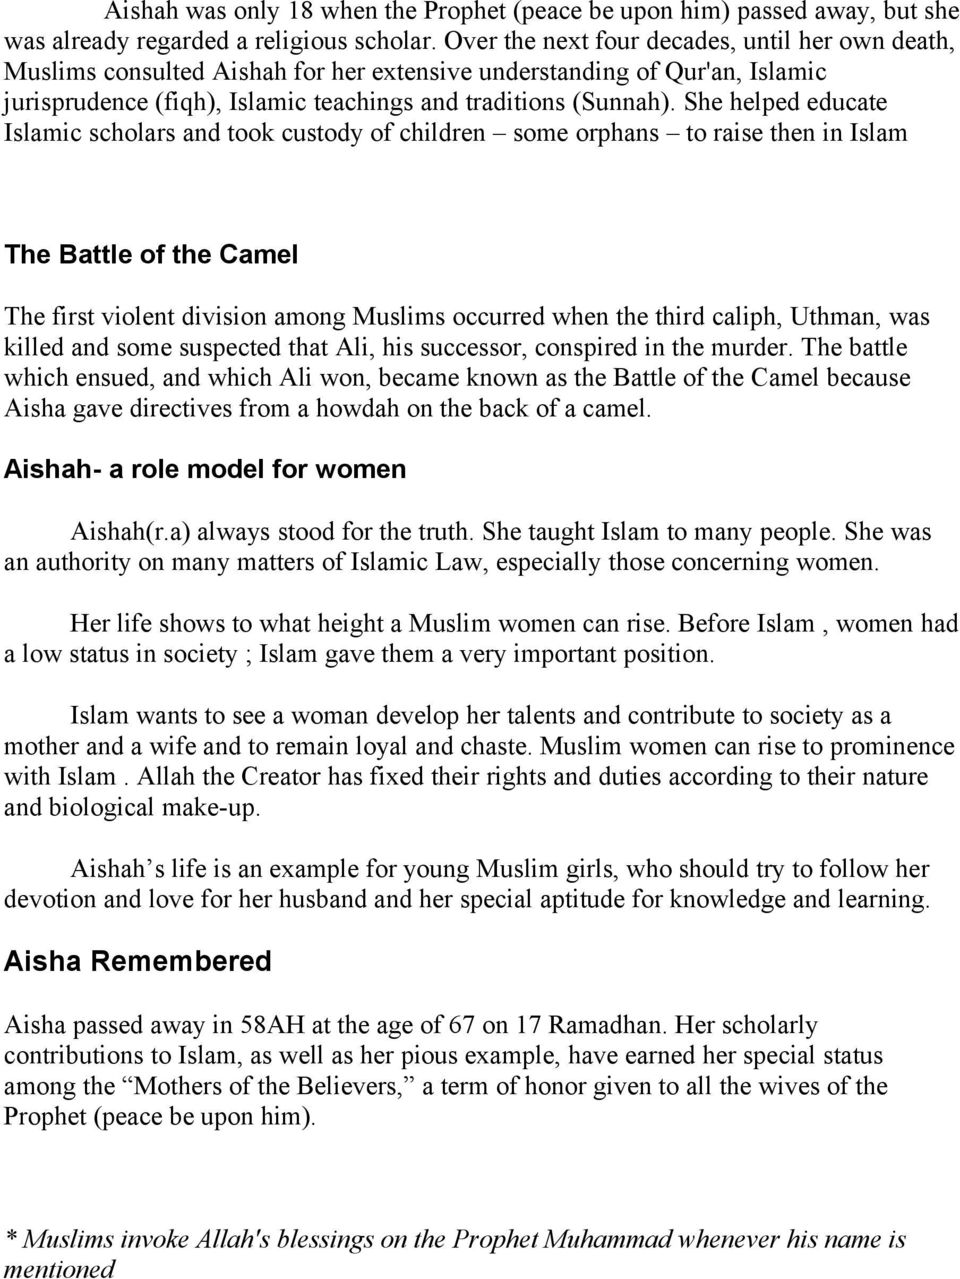 Aisha - Youngest Wife of the Prophet Muhammad - PDF